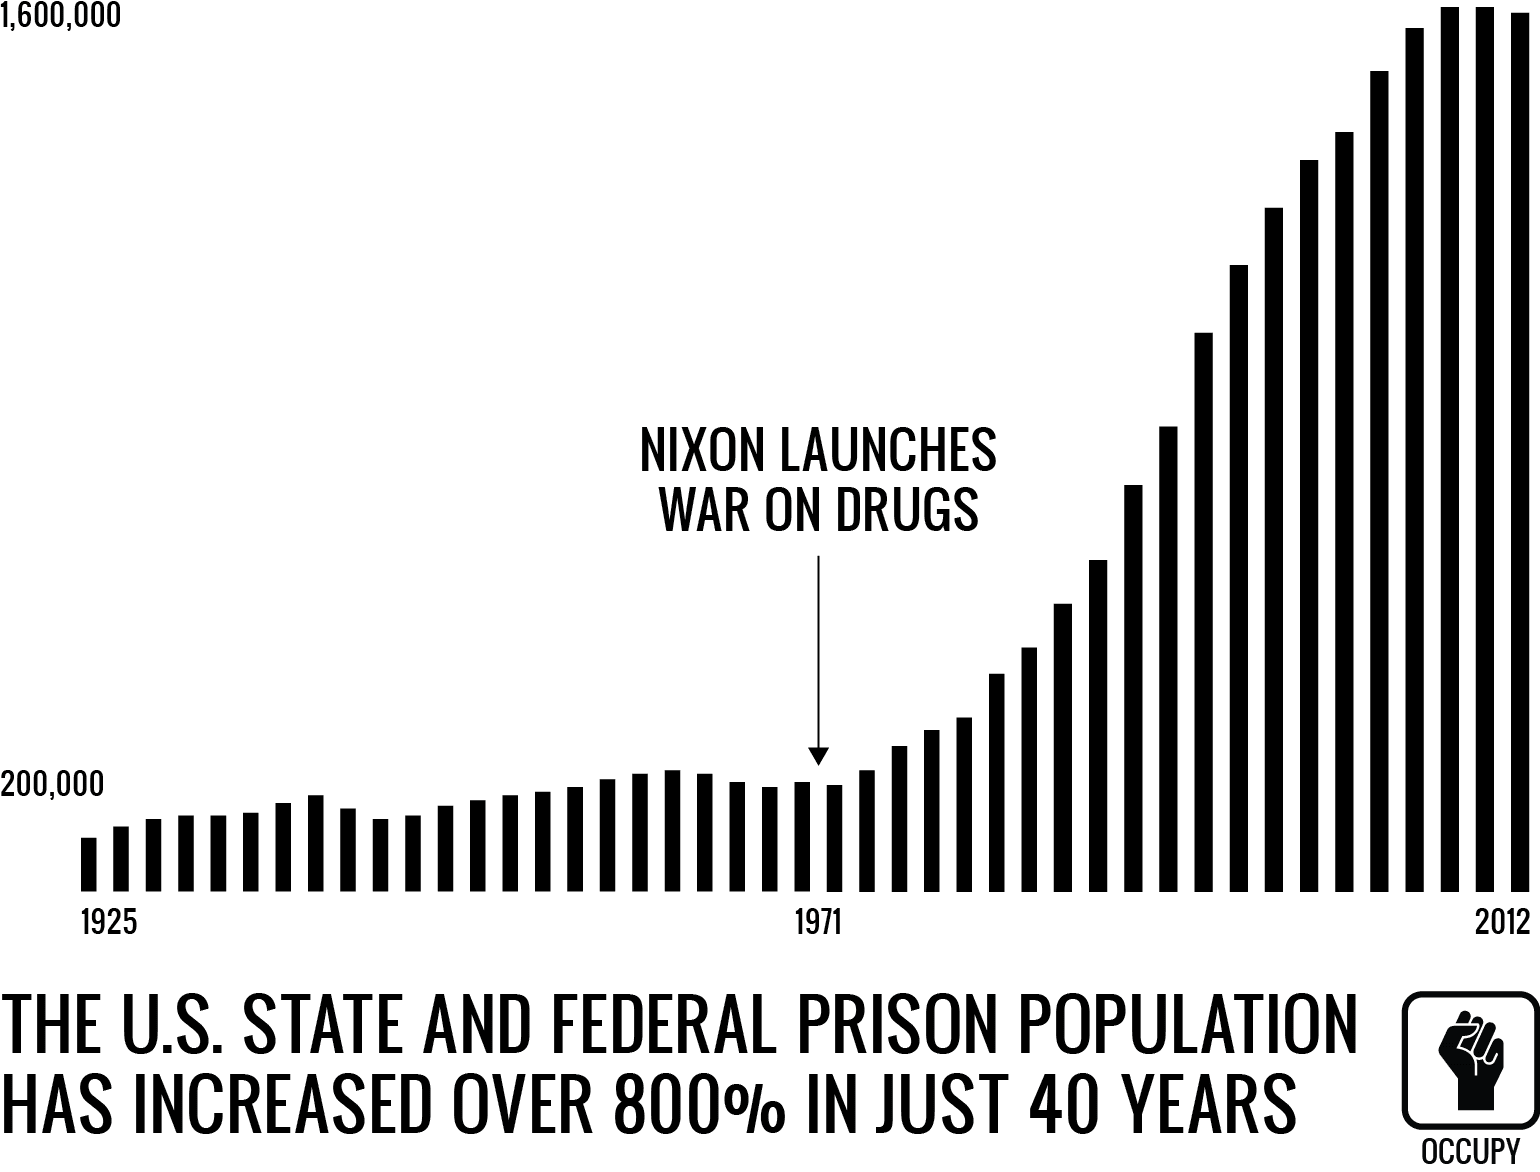 War on Drugs Prison Population Increase